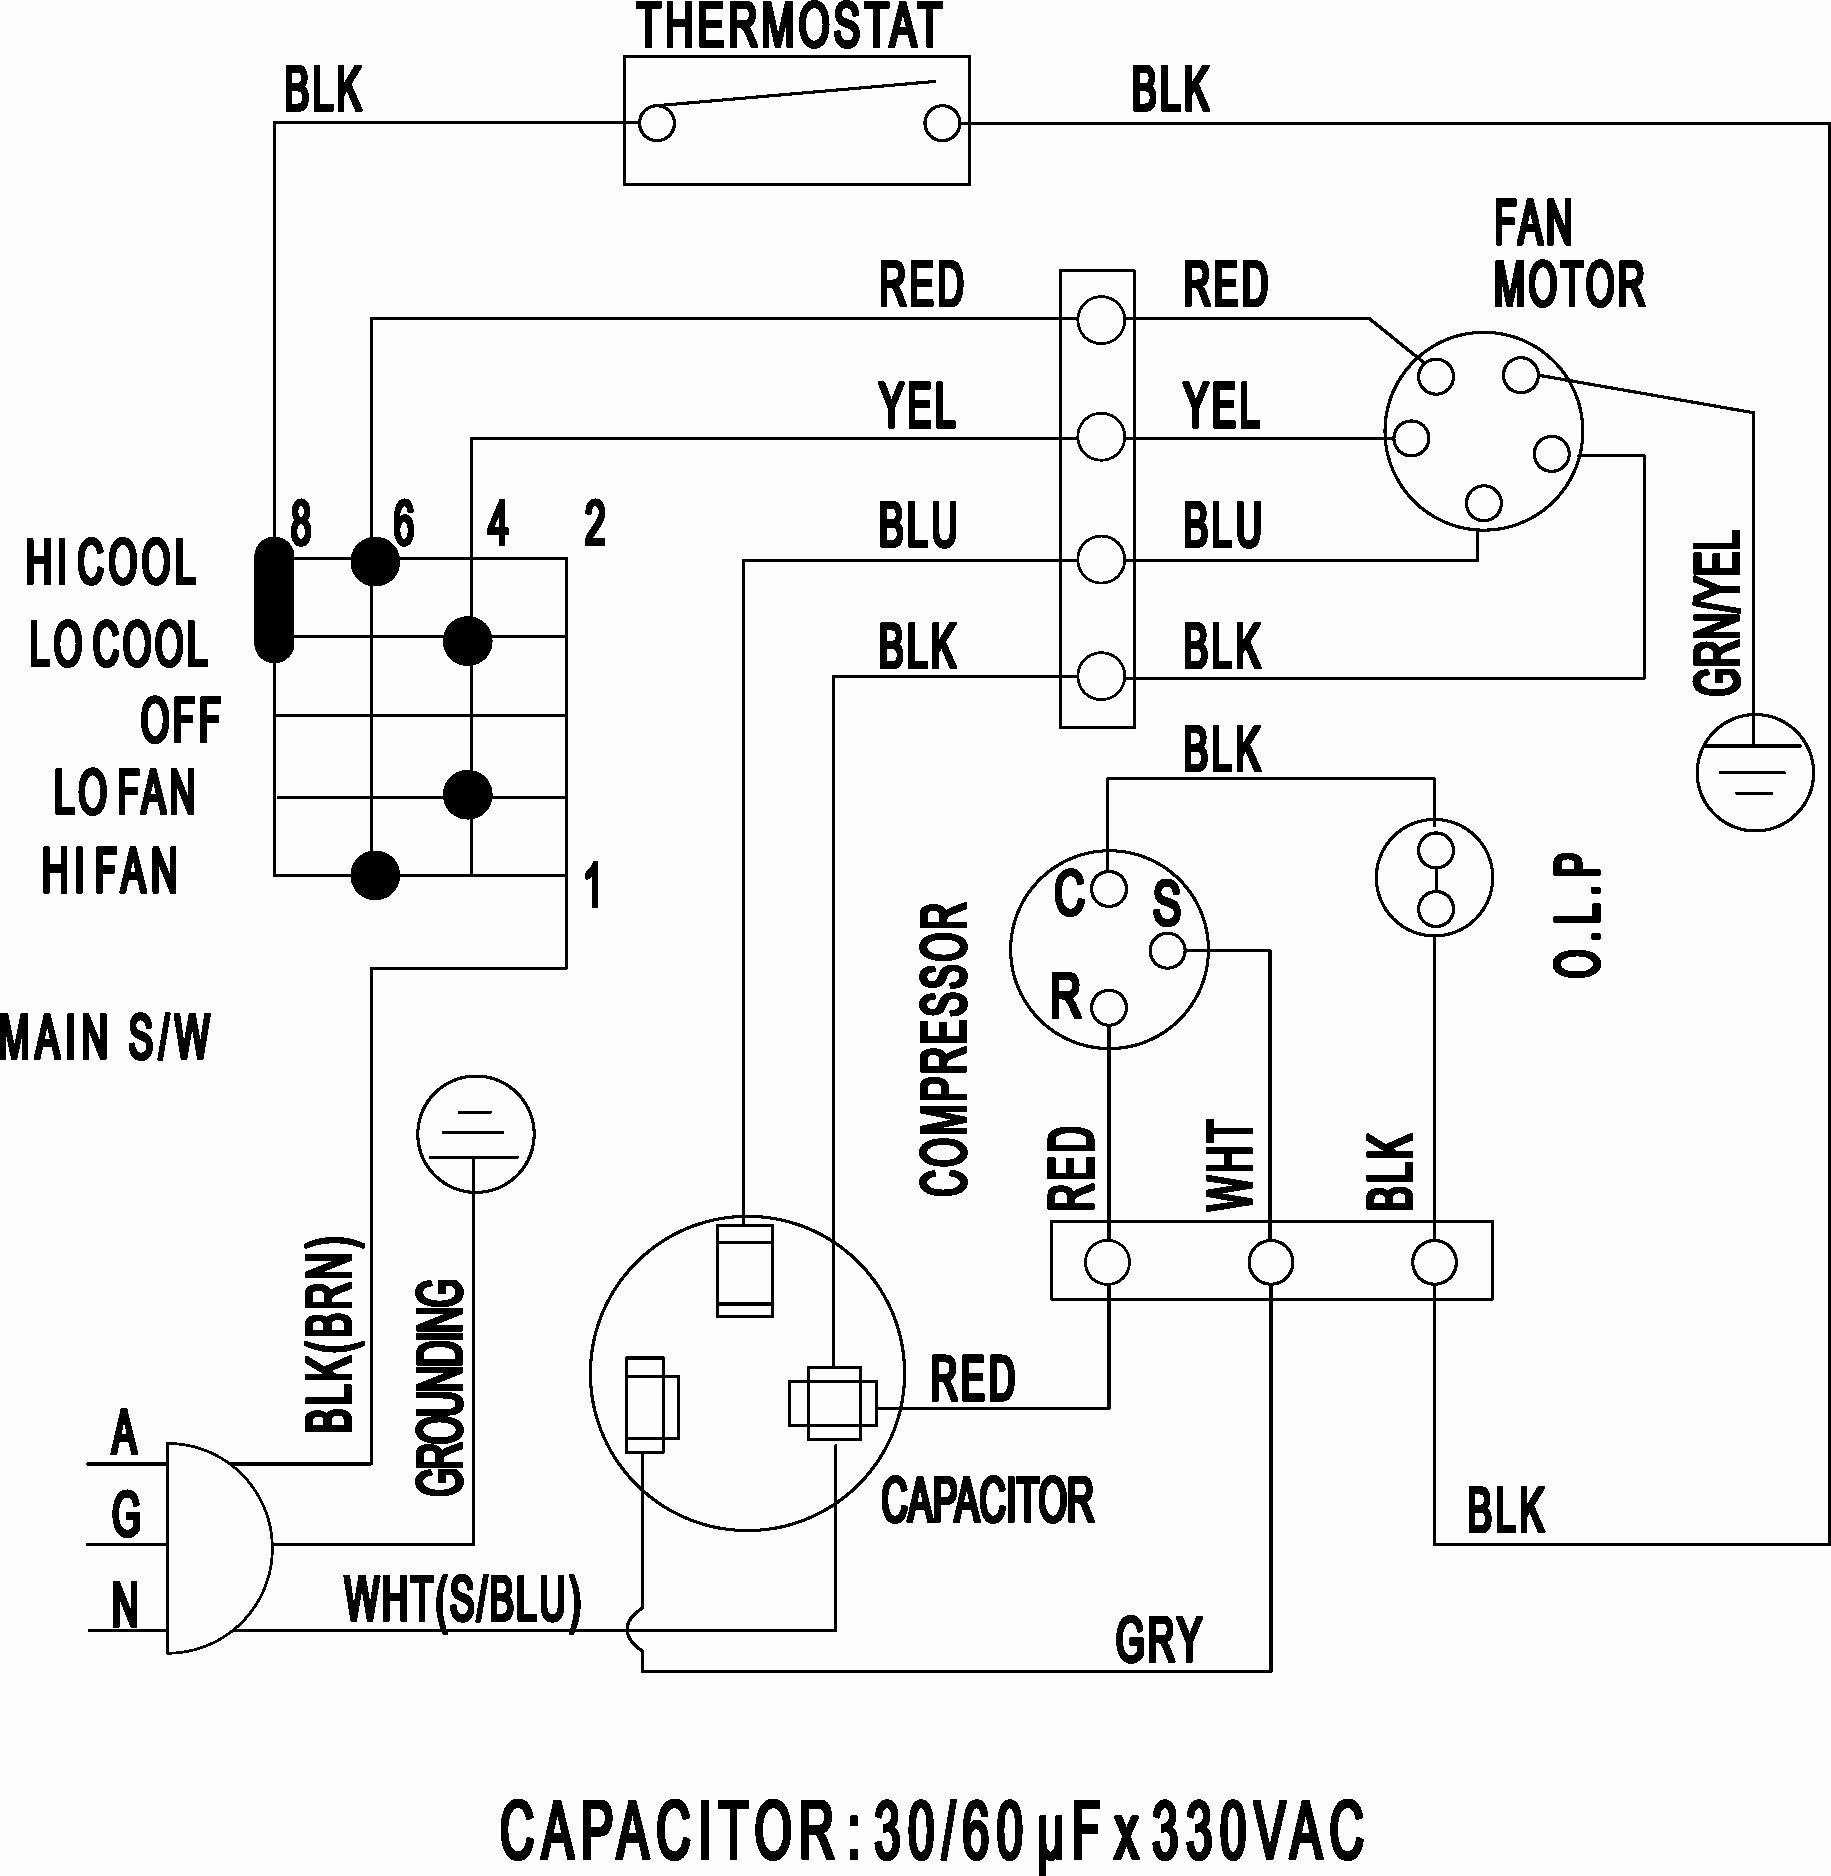 Wiring Diagram Air Conditioning